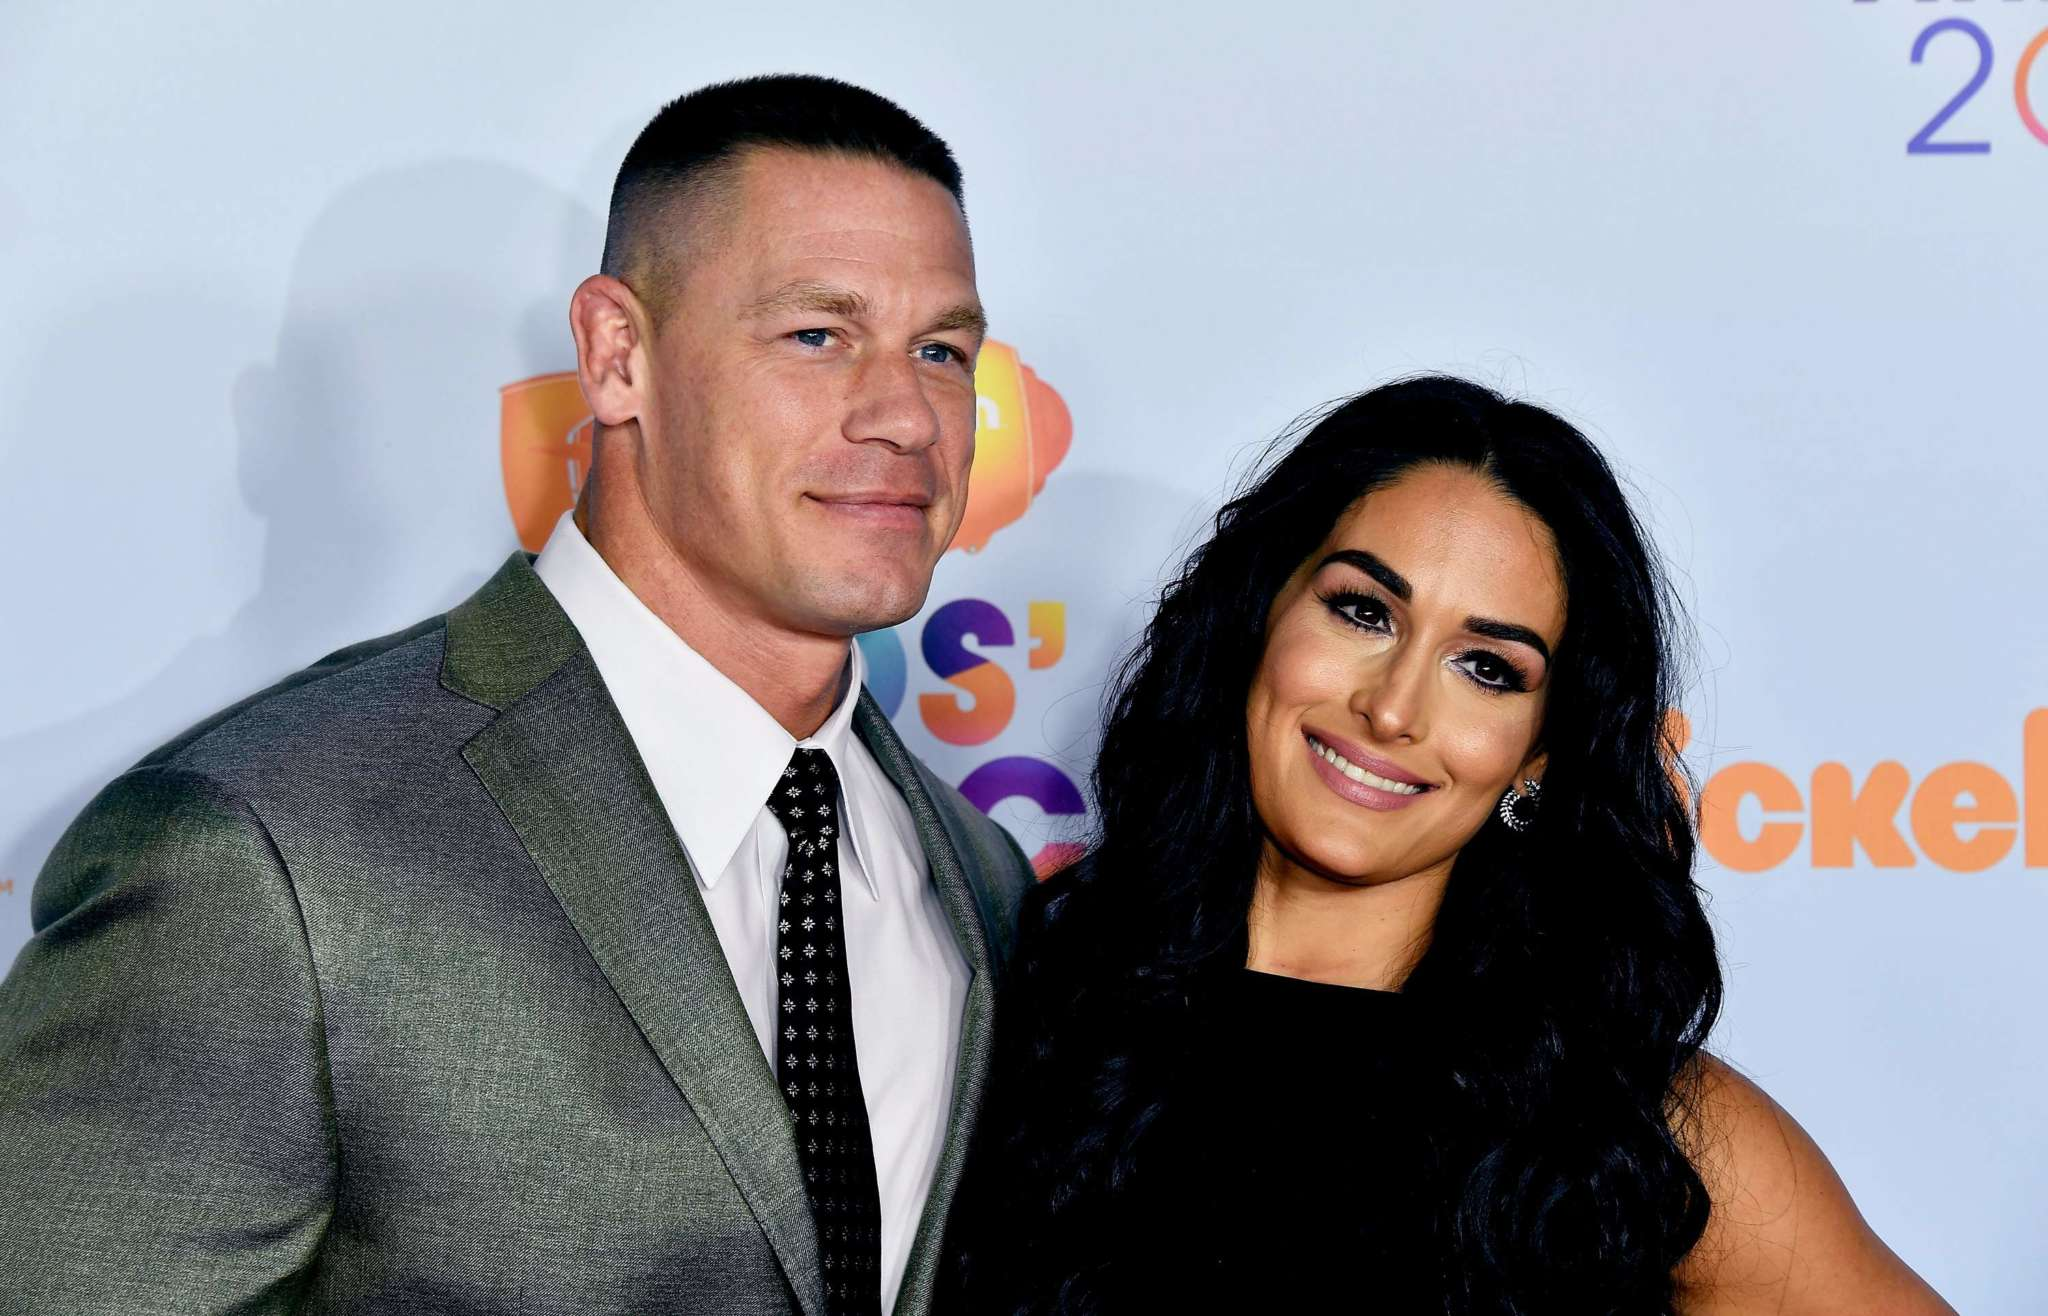 John Cena says he's been thinking about possibly retiring from wrestling